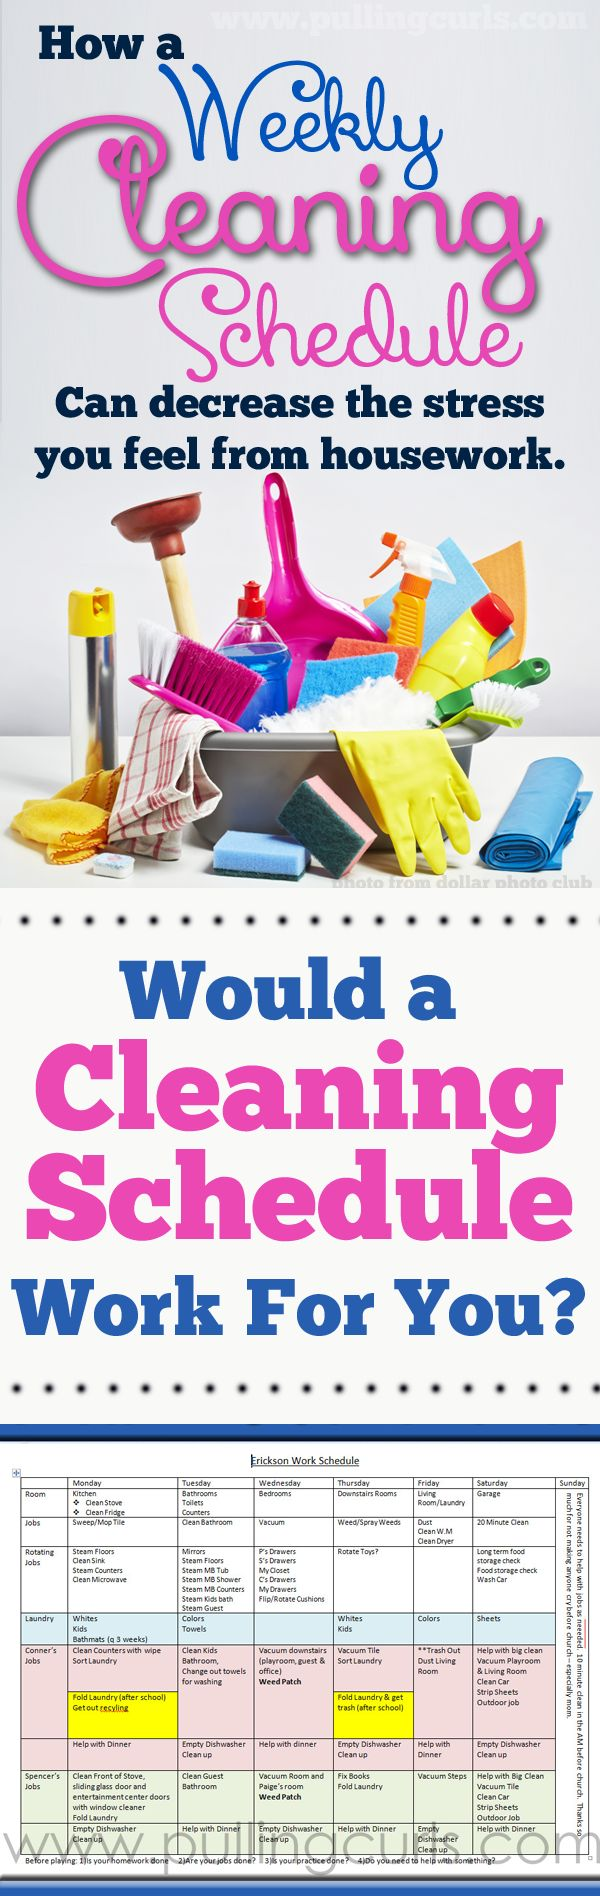 A weekly cleaning schedule might take away more stress than you first think. Having a day for each item lets your mind relax.